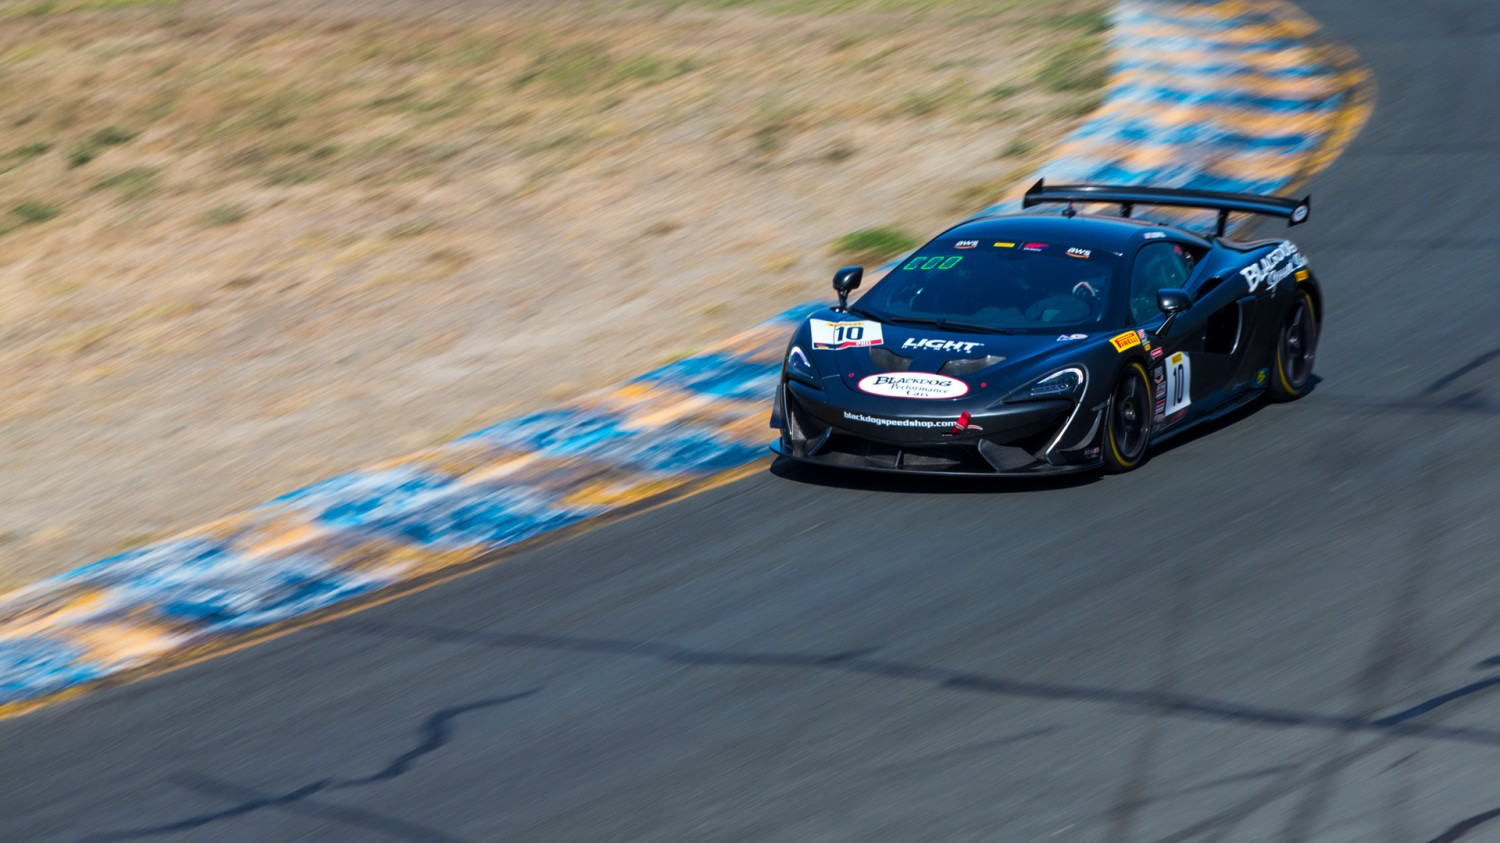 BREAK OUT THE BROOMS: Blackdog, Cooper Score Sweep Sonoma GT4 Sprint